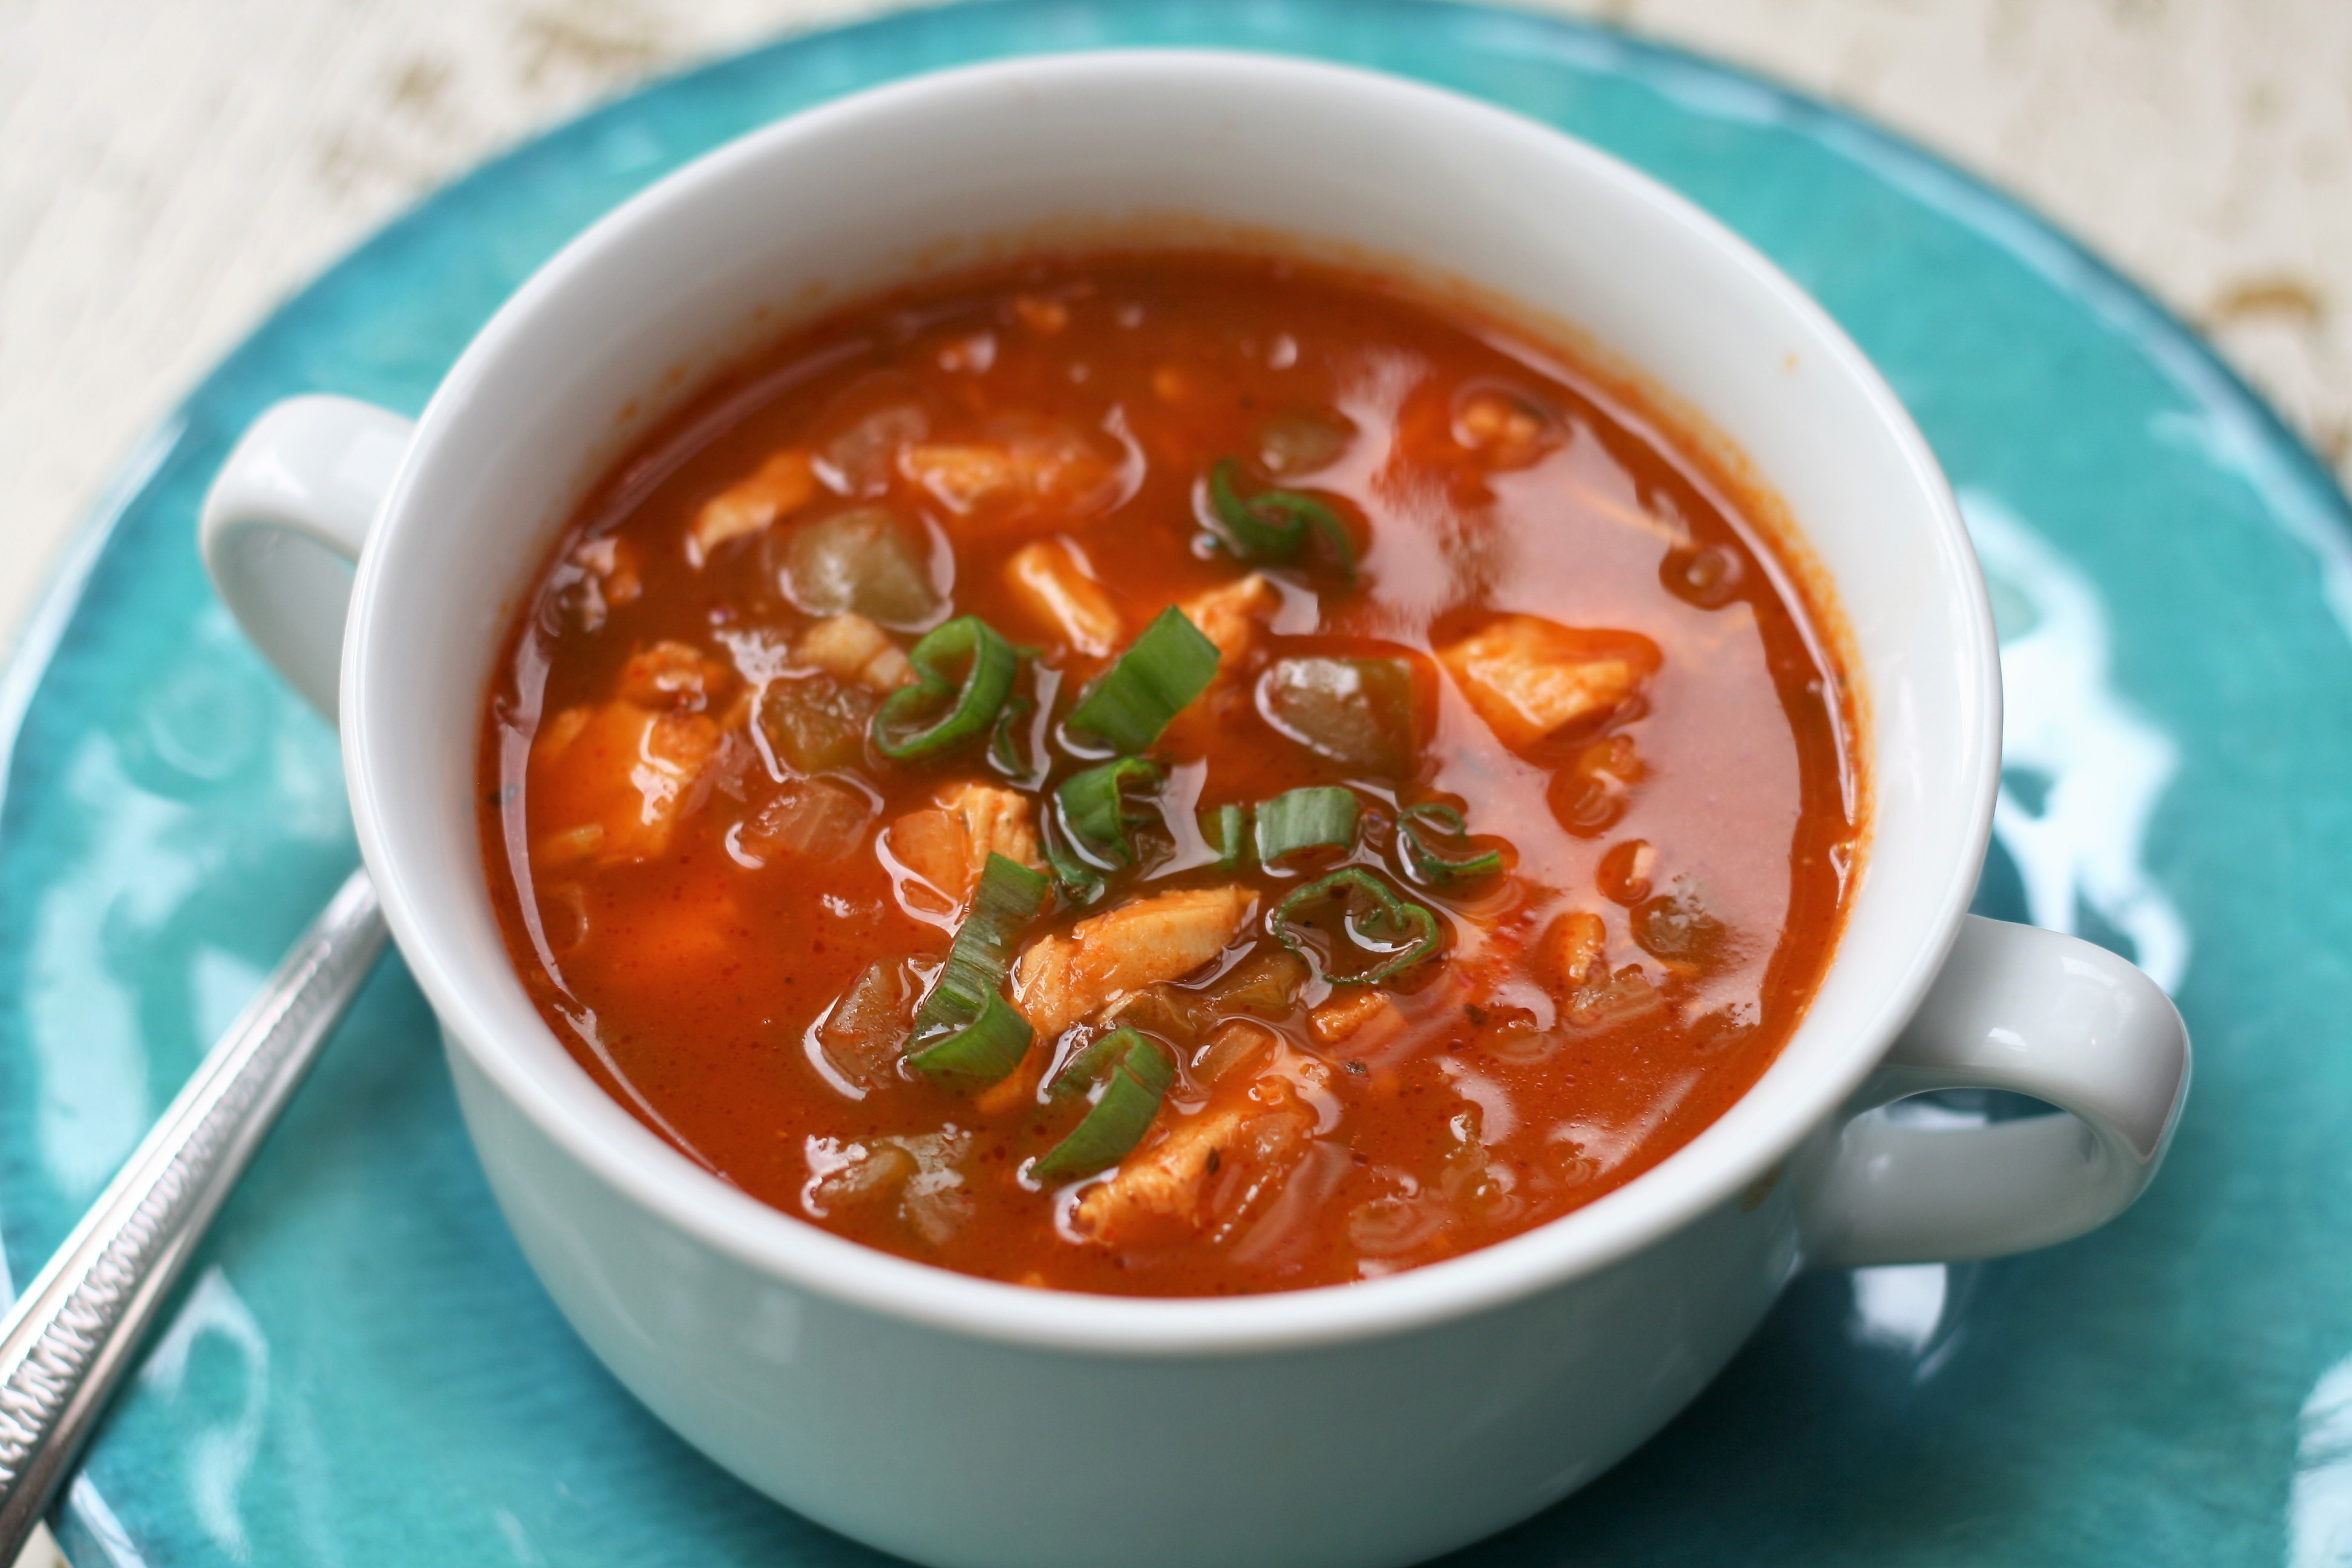 Spicy Smoked Turkey Soup